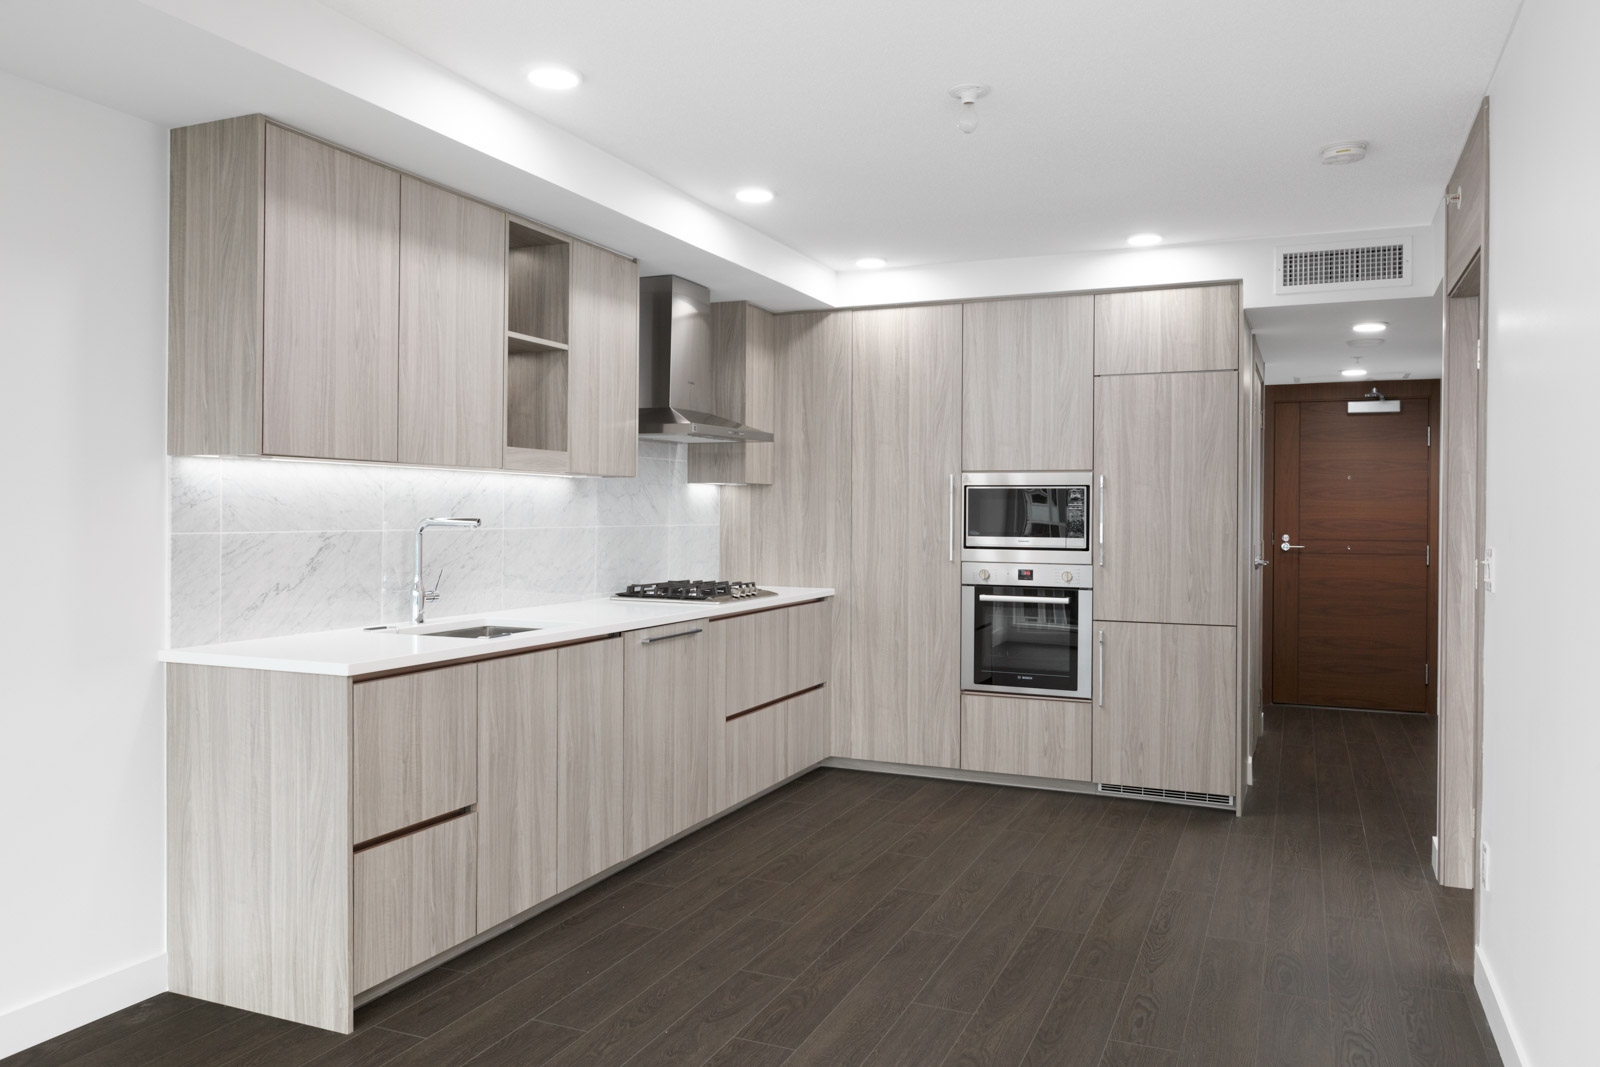 modern kitchen of new empty living room in concord gardens south estate on hazelbridge in richmond